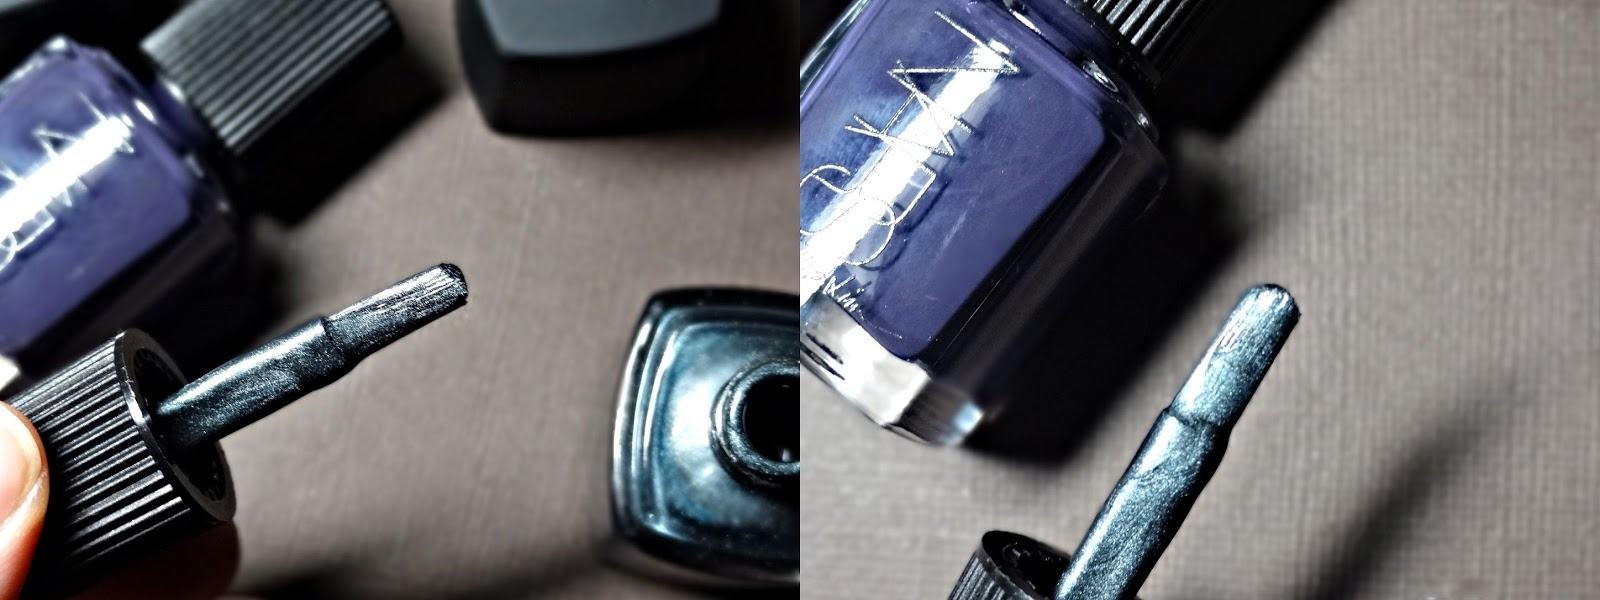 The 3.1 Phillip Lim for NARS Nail Collection Crossroads and Wrong Turn Review, Photos & Swatches